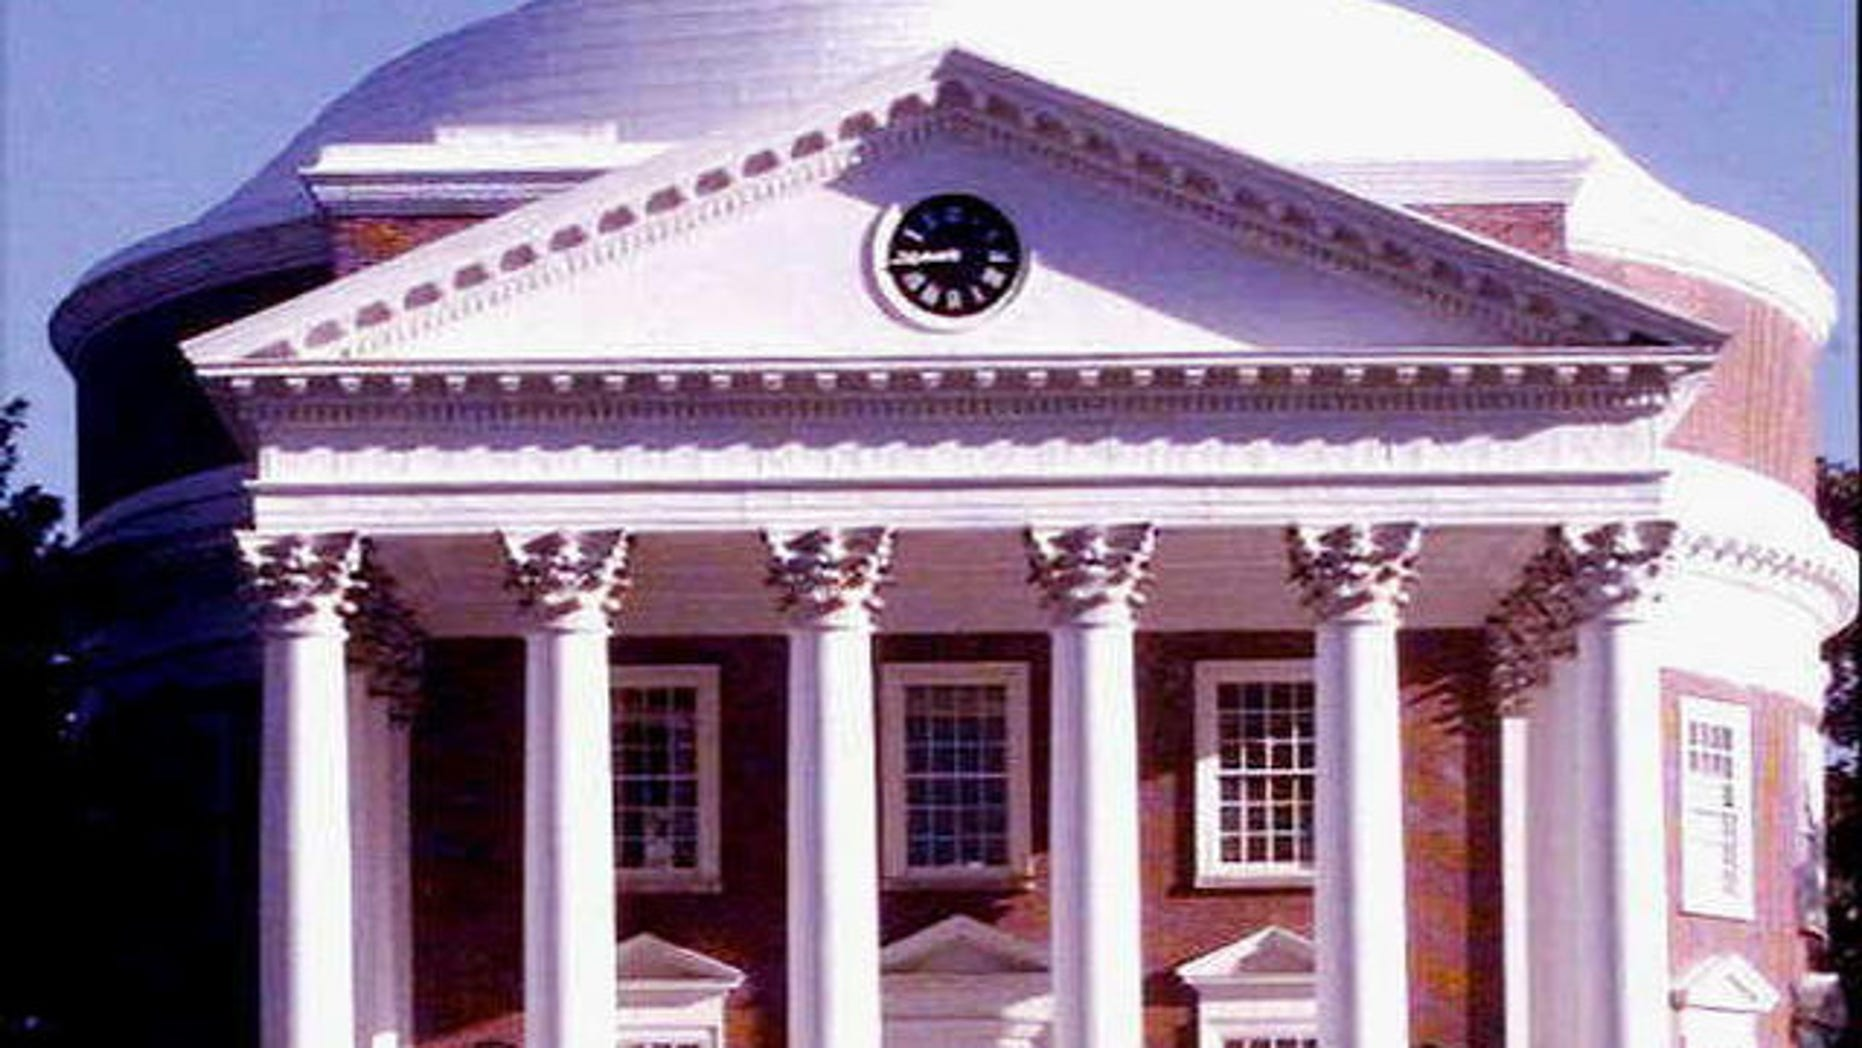 University of Virginia building on campus